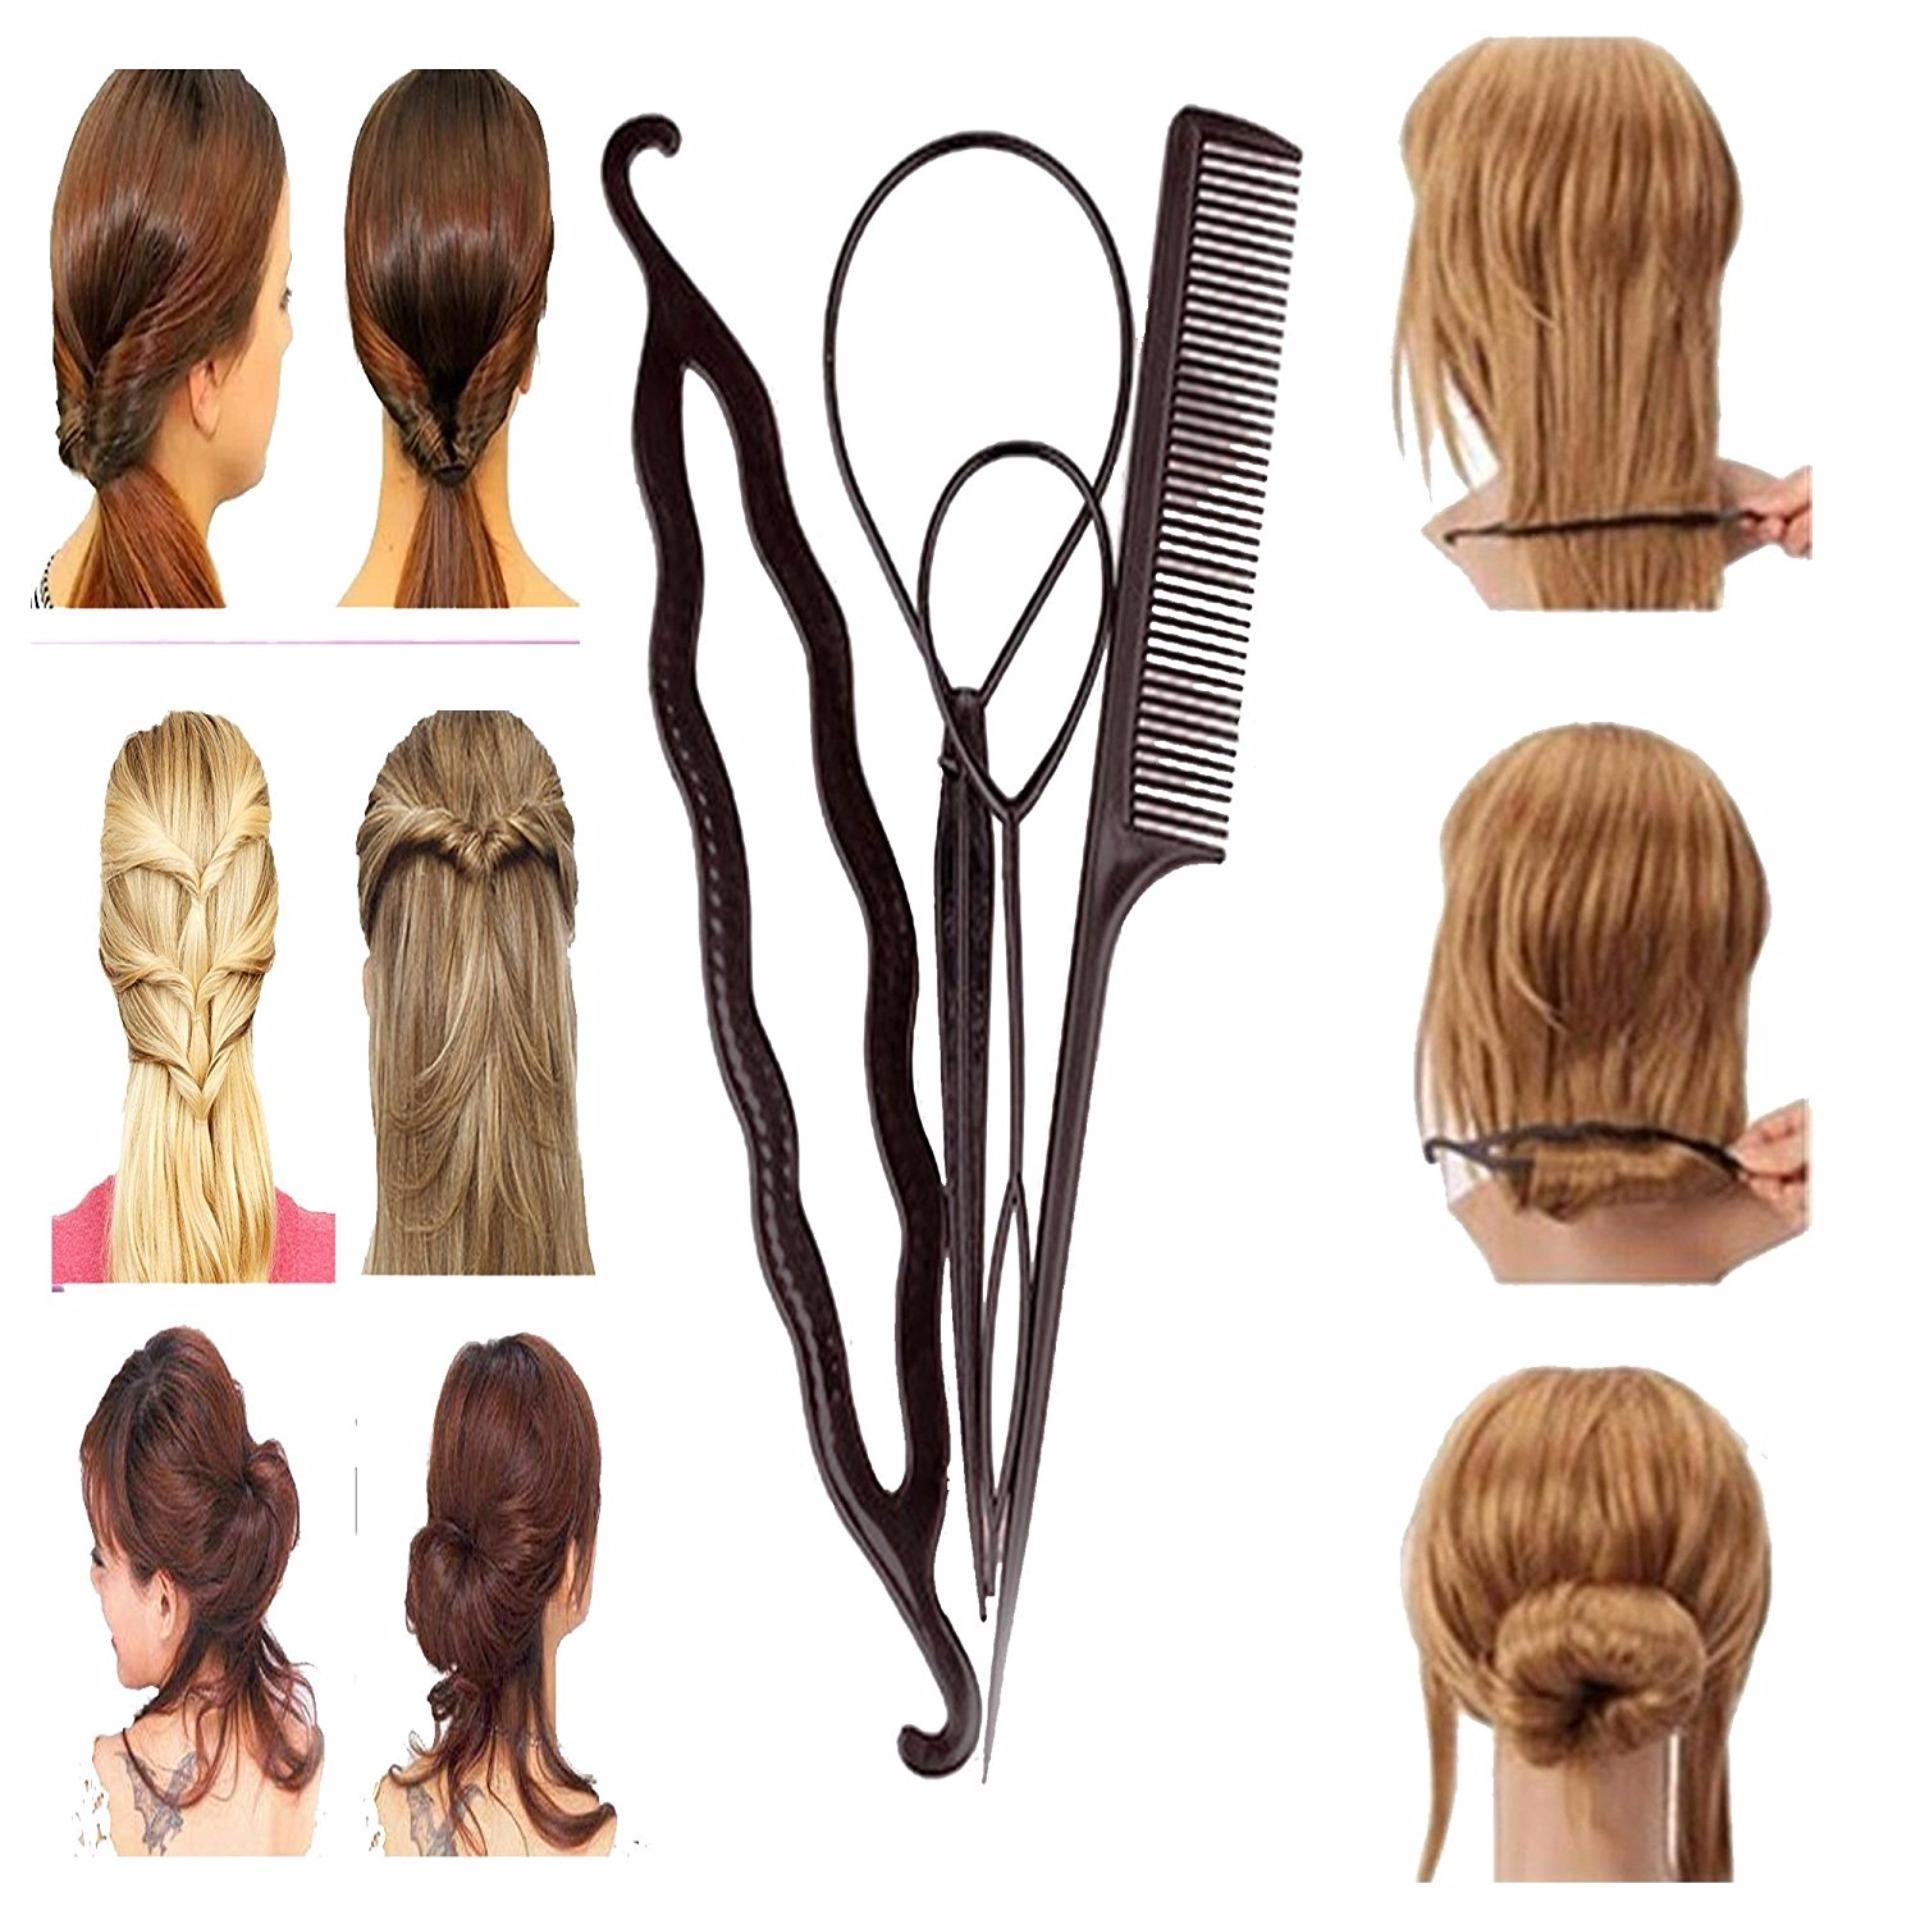 ... Anneui - 4in1 Topsy Hair Styler - Alat Styling Rambut Set Isi 4 ... 9afb507676